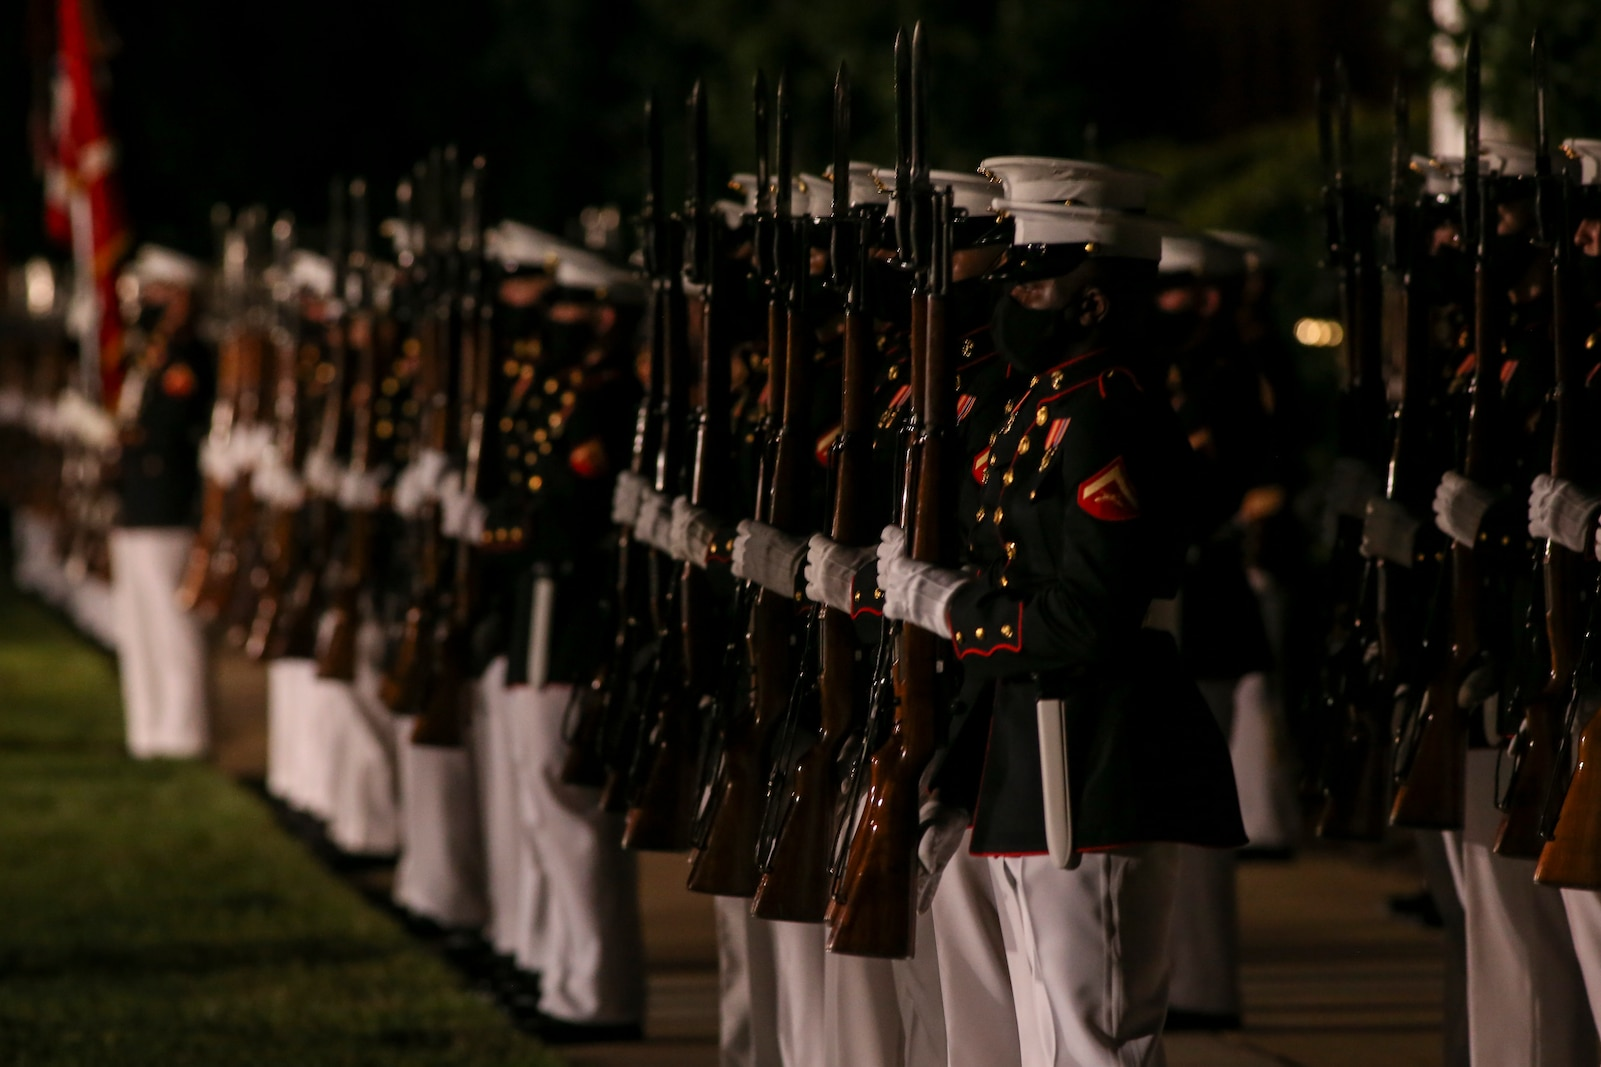 Admiral Michael M. Gilday, chief of naval operations, was the guest of honor, and the hosting official was the 39th Commandant of the Marine Corps, Gen. David H. Berger.